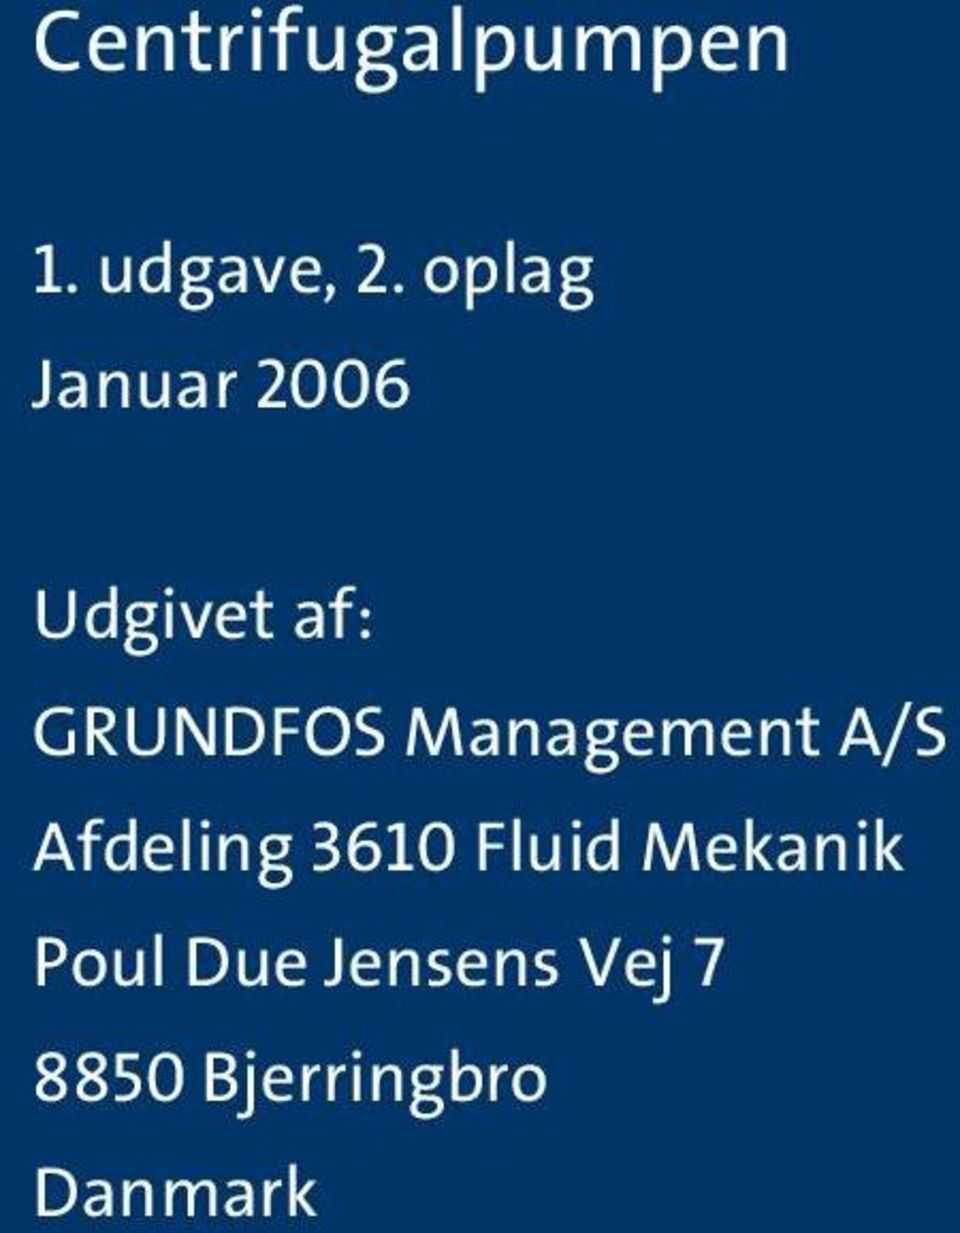 Manageent A/S Afdeling 360 Fluid